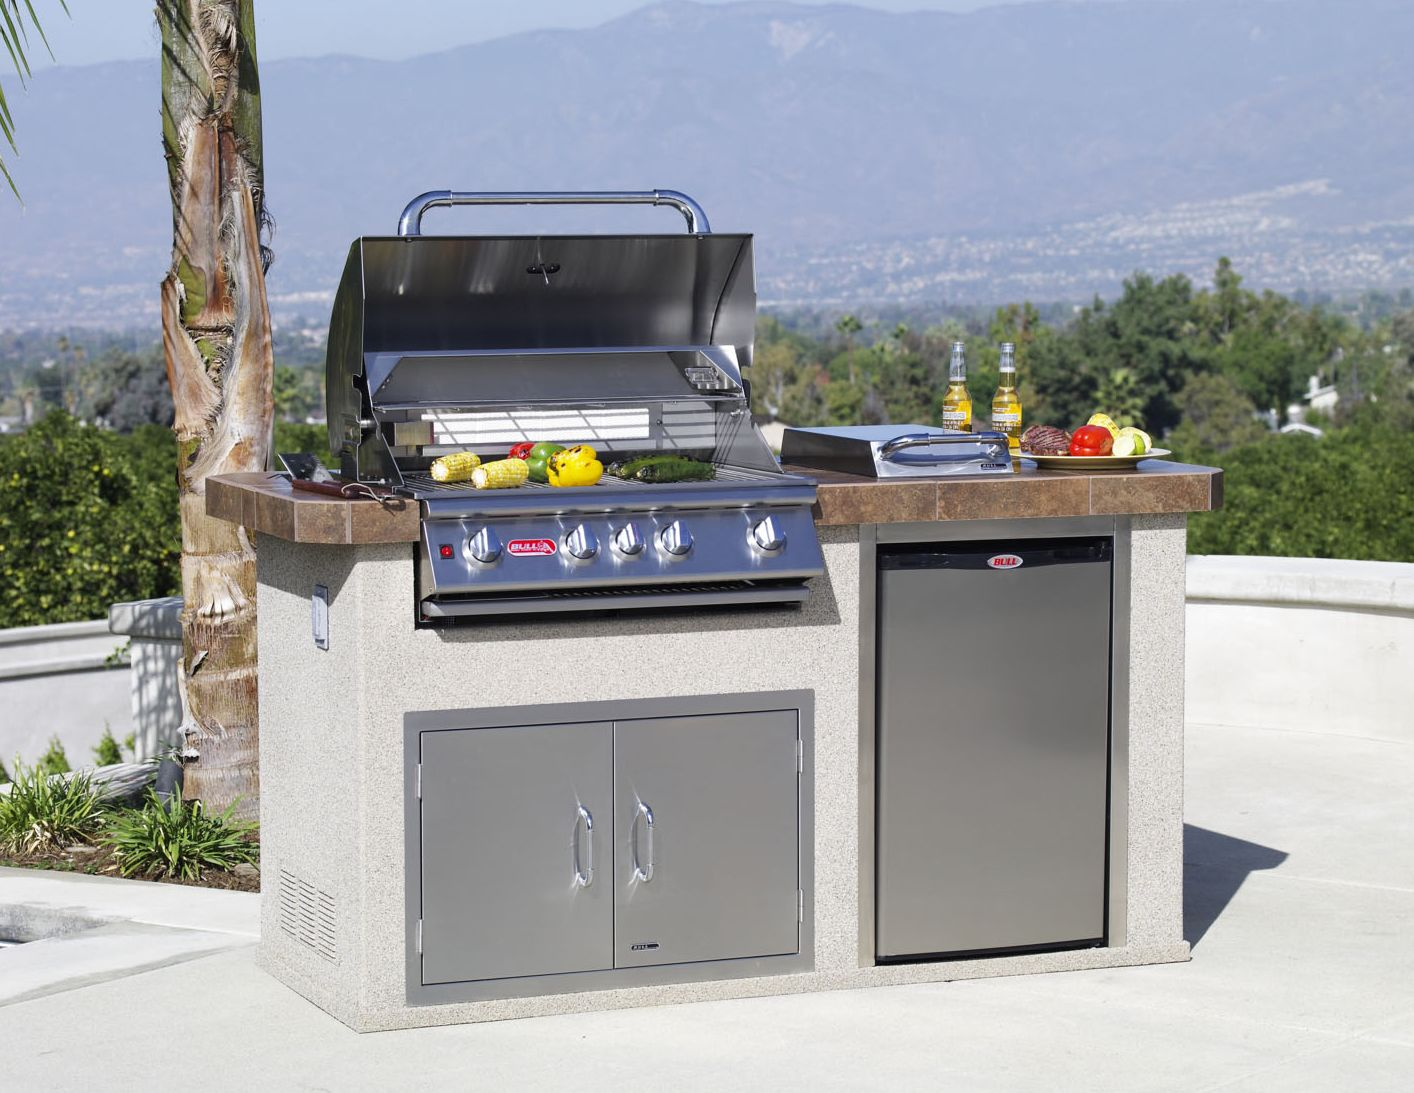 Power Q Outdoor Island Kitchen Standard Features Include Angus Bbq Stainless Steel 4 Burner Grill Stucc Diy Countertops Countertops Tile Countertops Kitchen